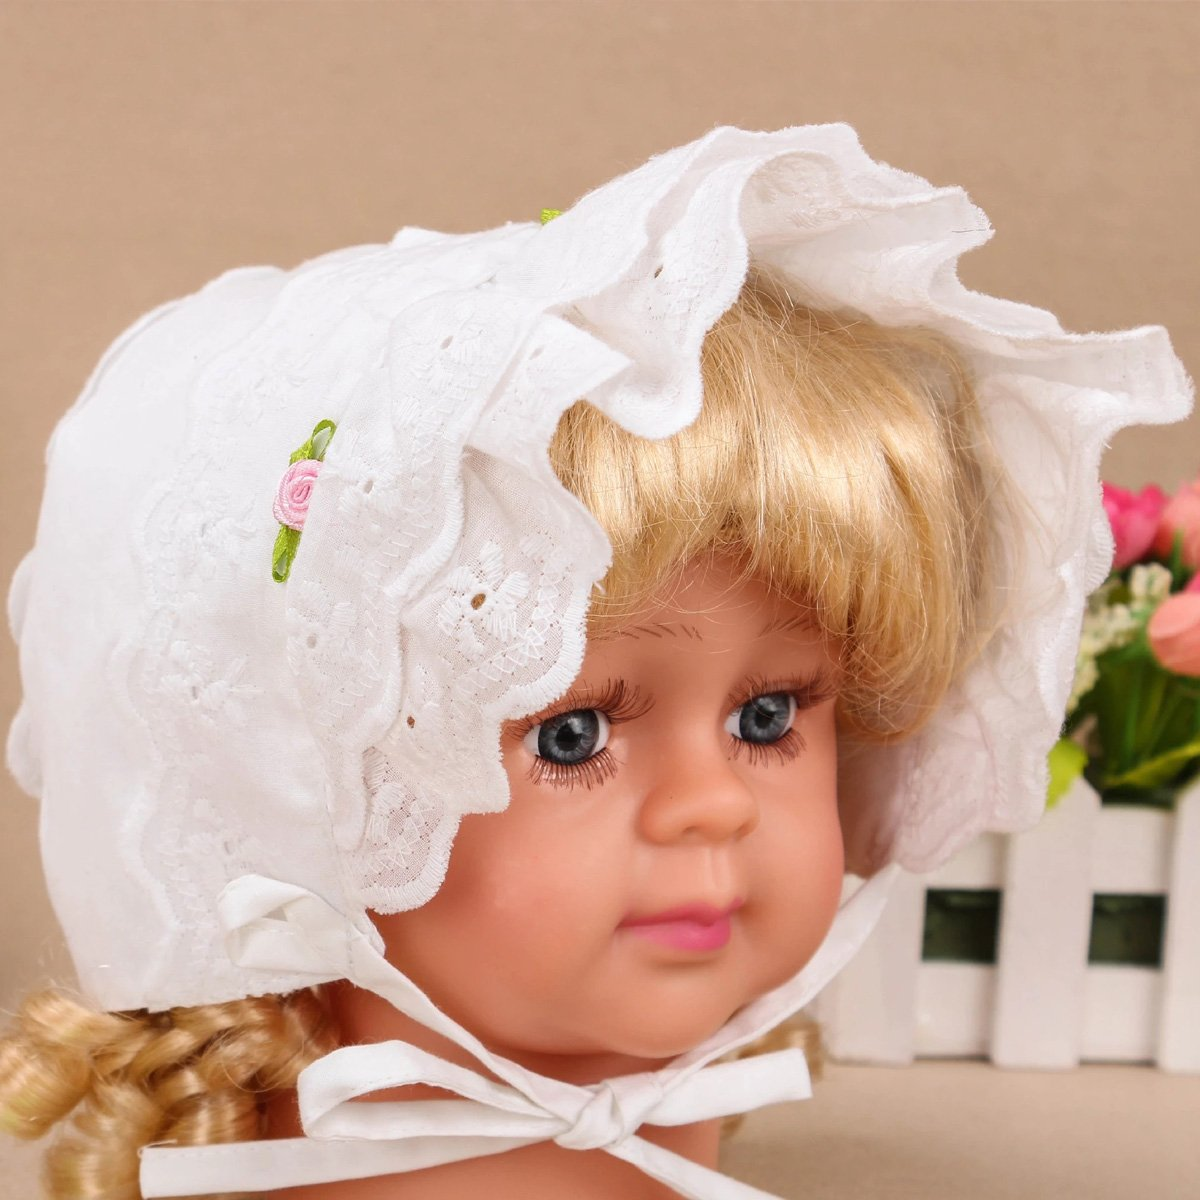 Slowera Cap Baby Girls 100% Cotton Double Brimmed Eyelet Lace Bonnet with Flowers (0-3 Months, White) by Slowera (Image #4)